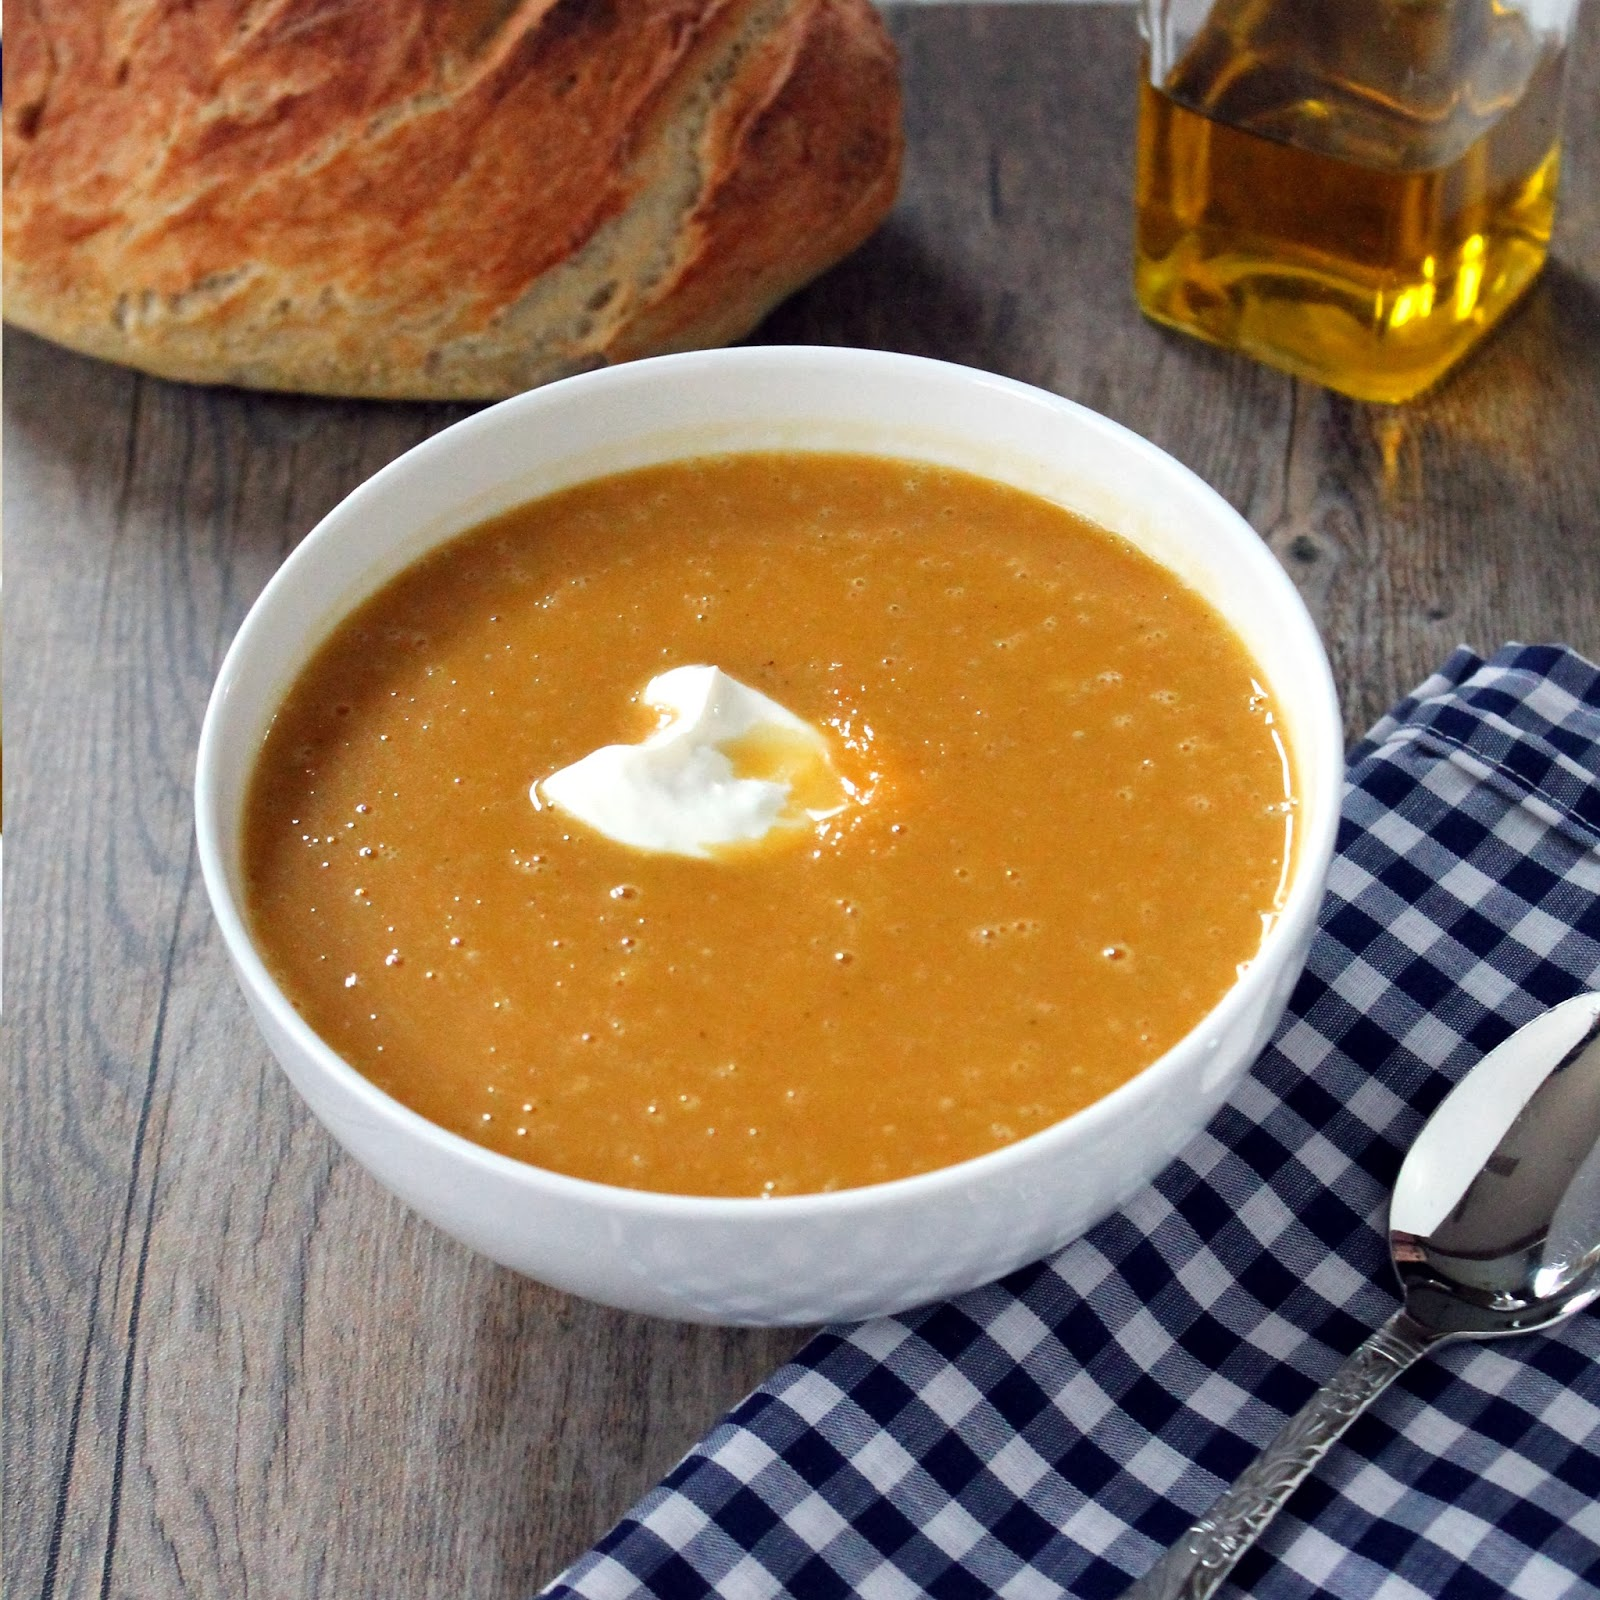 10. Once the soup has been pureed, stir in the heavy cream and serve ...